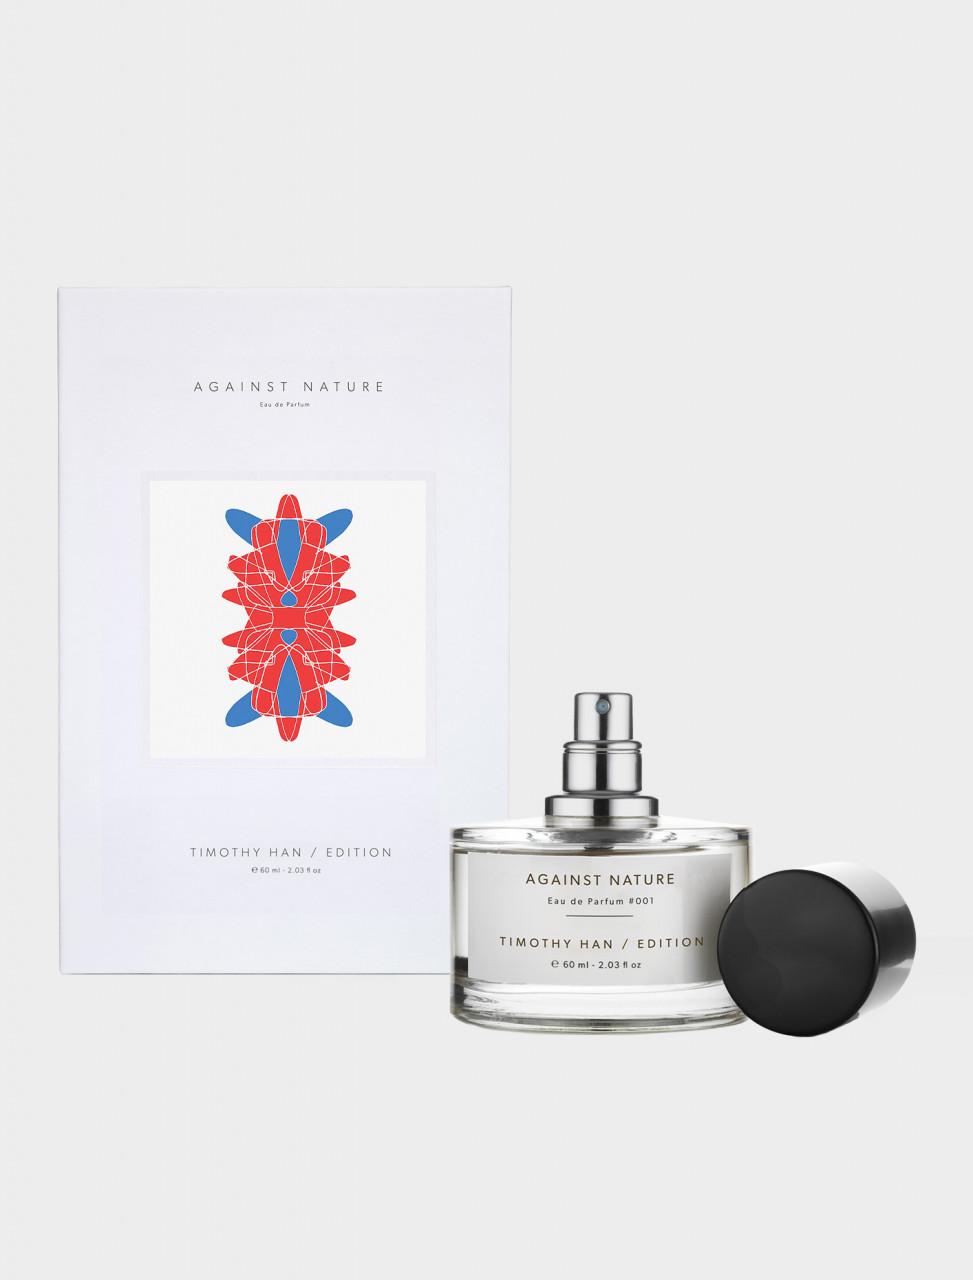 343-TH/AN60ML TIMOTHY HAN EAU DE PARFUM AGAINST NATURE